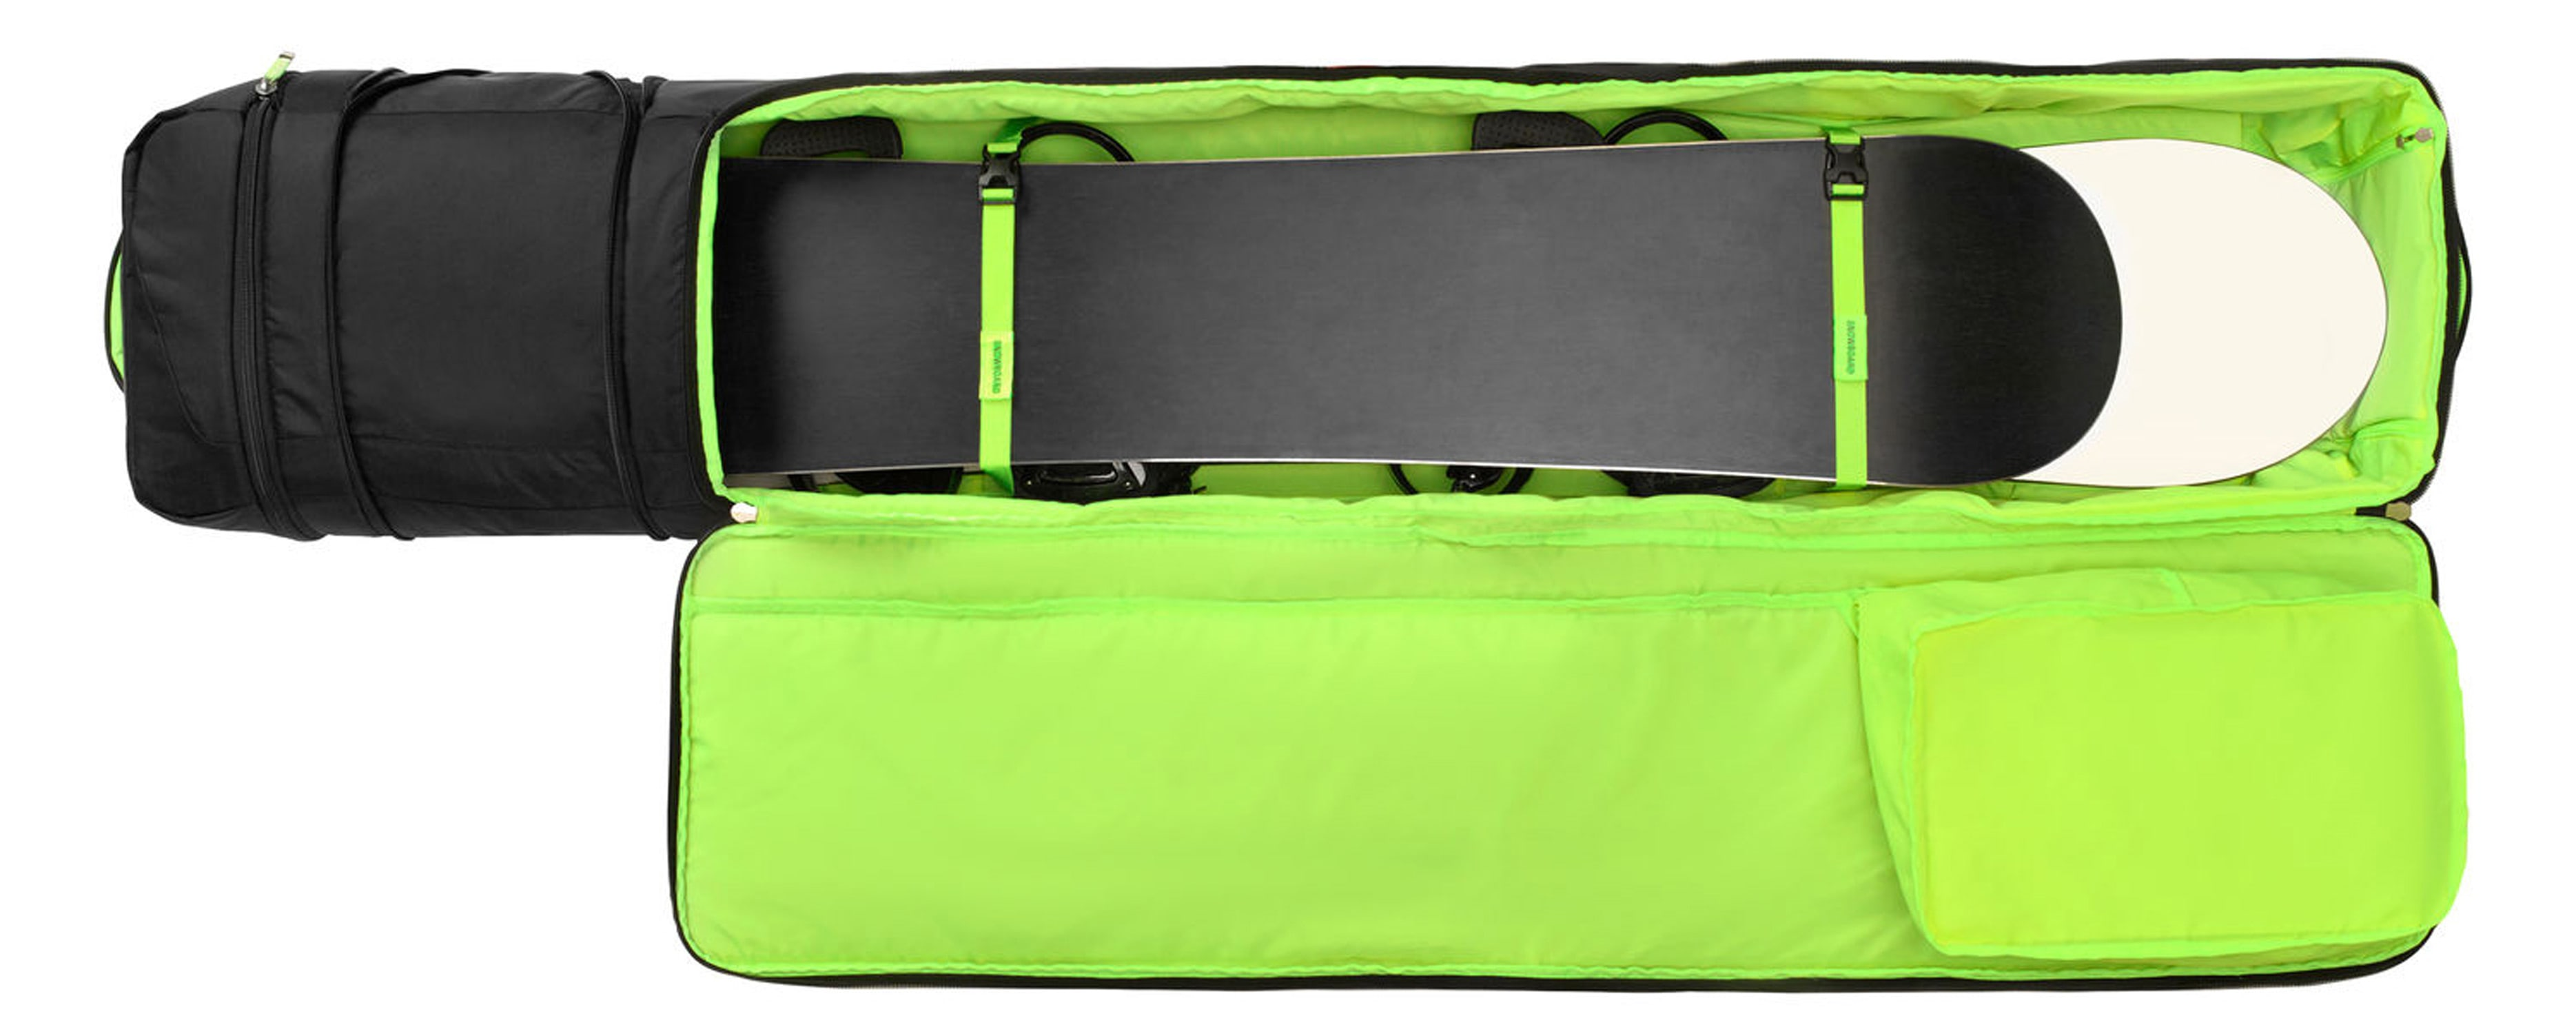 e9232616d26 High Sierra Pro Series 2 Double Adjustable Wheeled Ski Snowboard Bag -  thumbnail 2